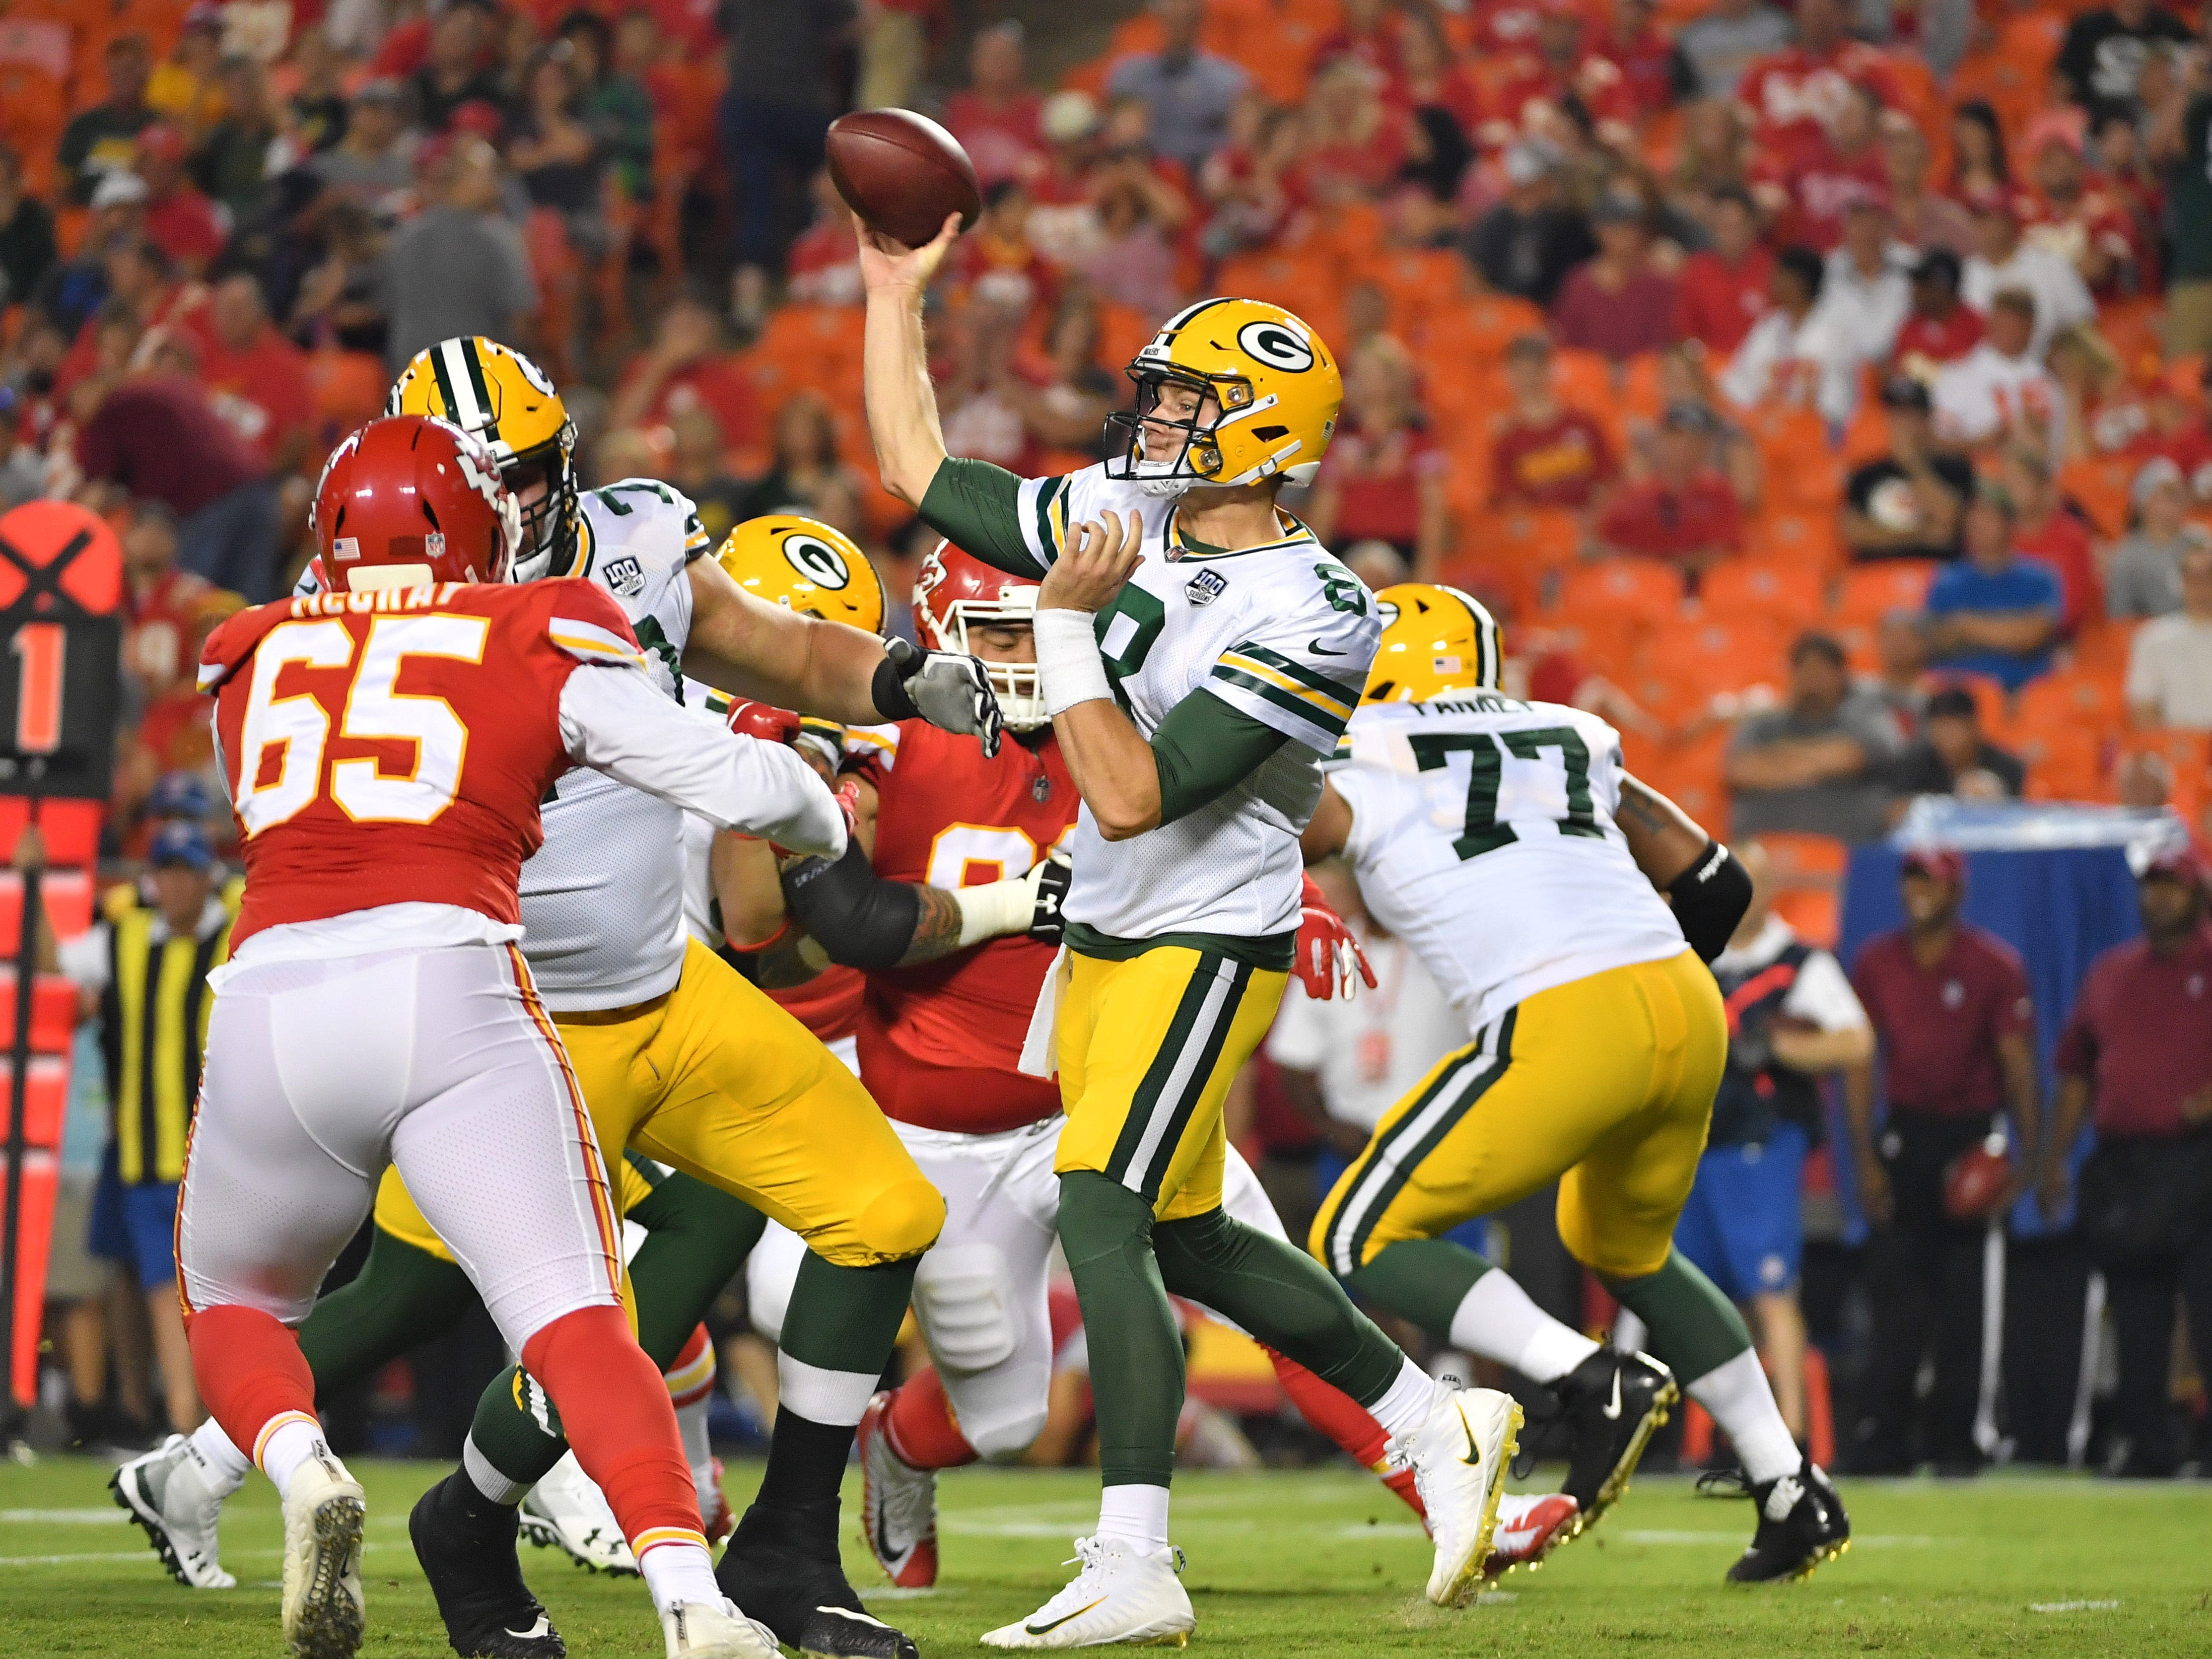 Aug 30, 2018; Kansas City, MO, USA; Green Bay Packers quarterback Tim Boyle (8) throws a pass during the first half against the Kansas City Chiefs at Arrowhead Stadium.